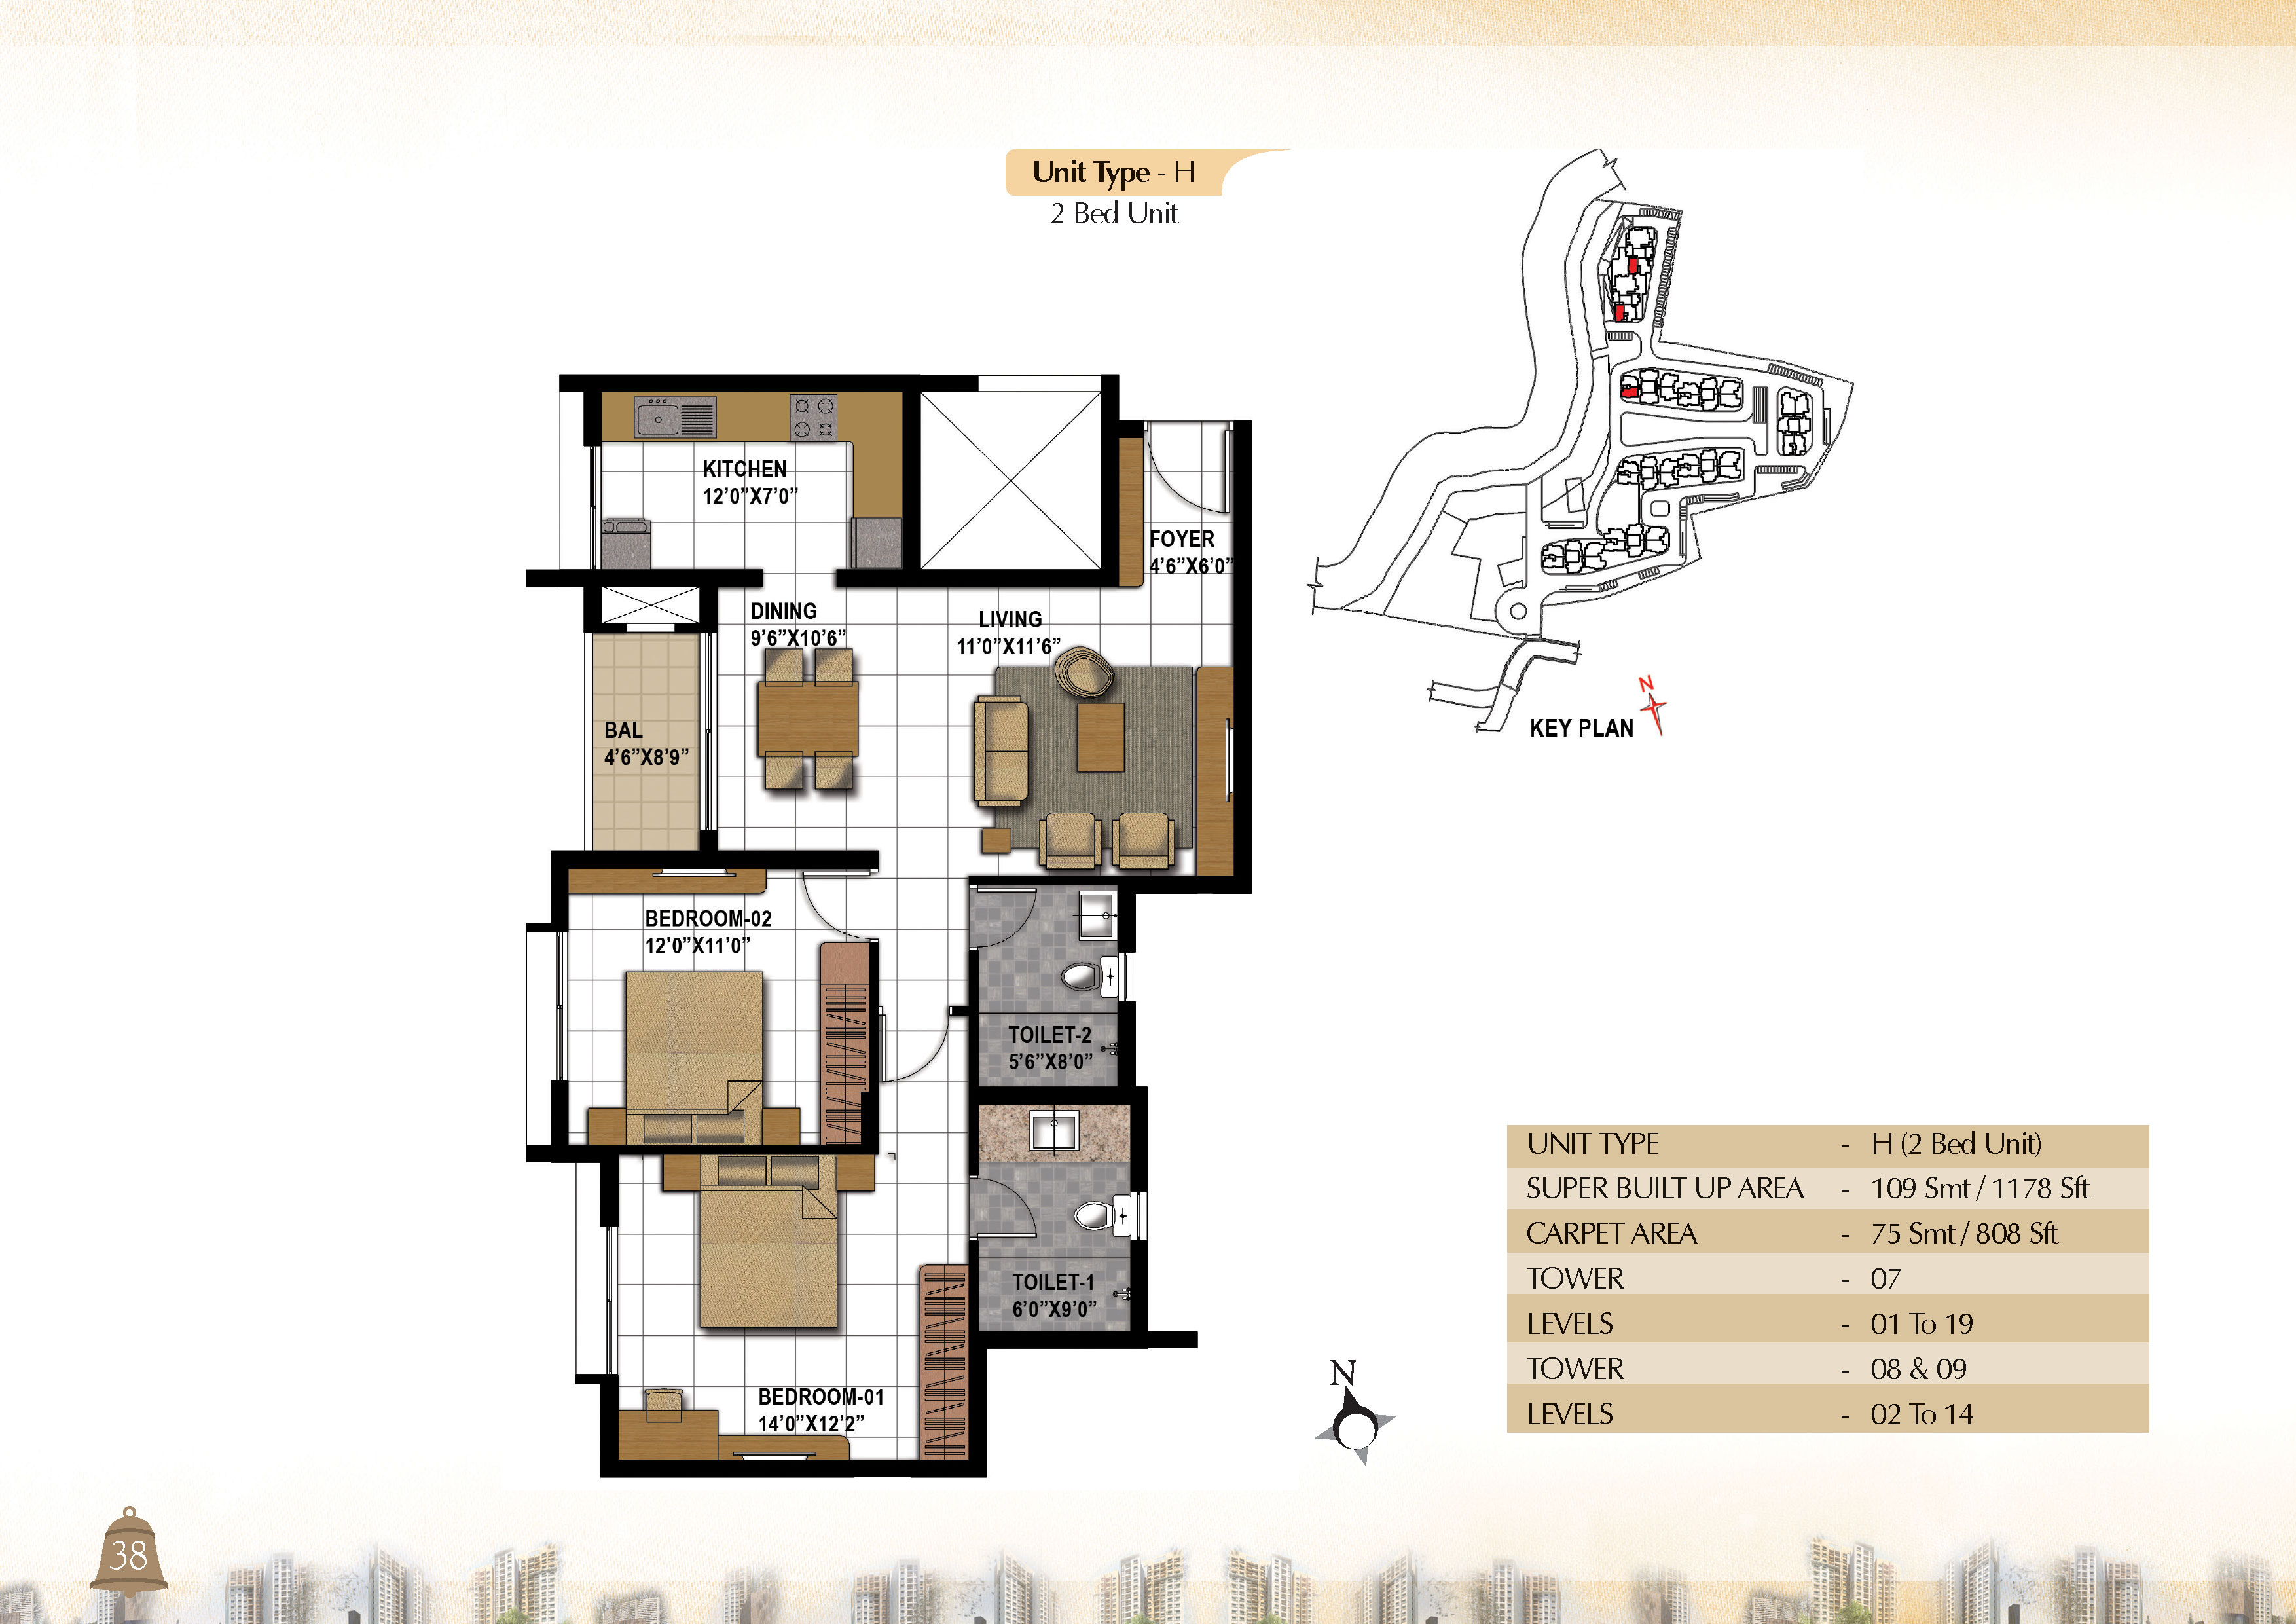 Type H - 2 Bed -  1178 Sq Ft